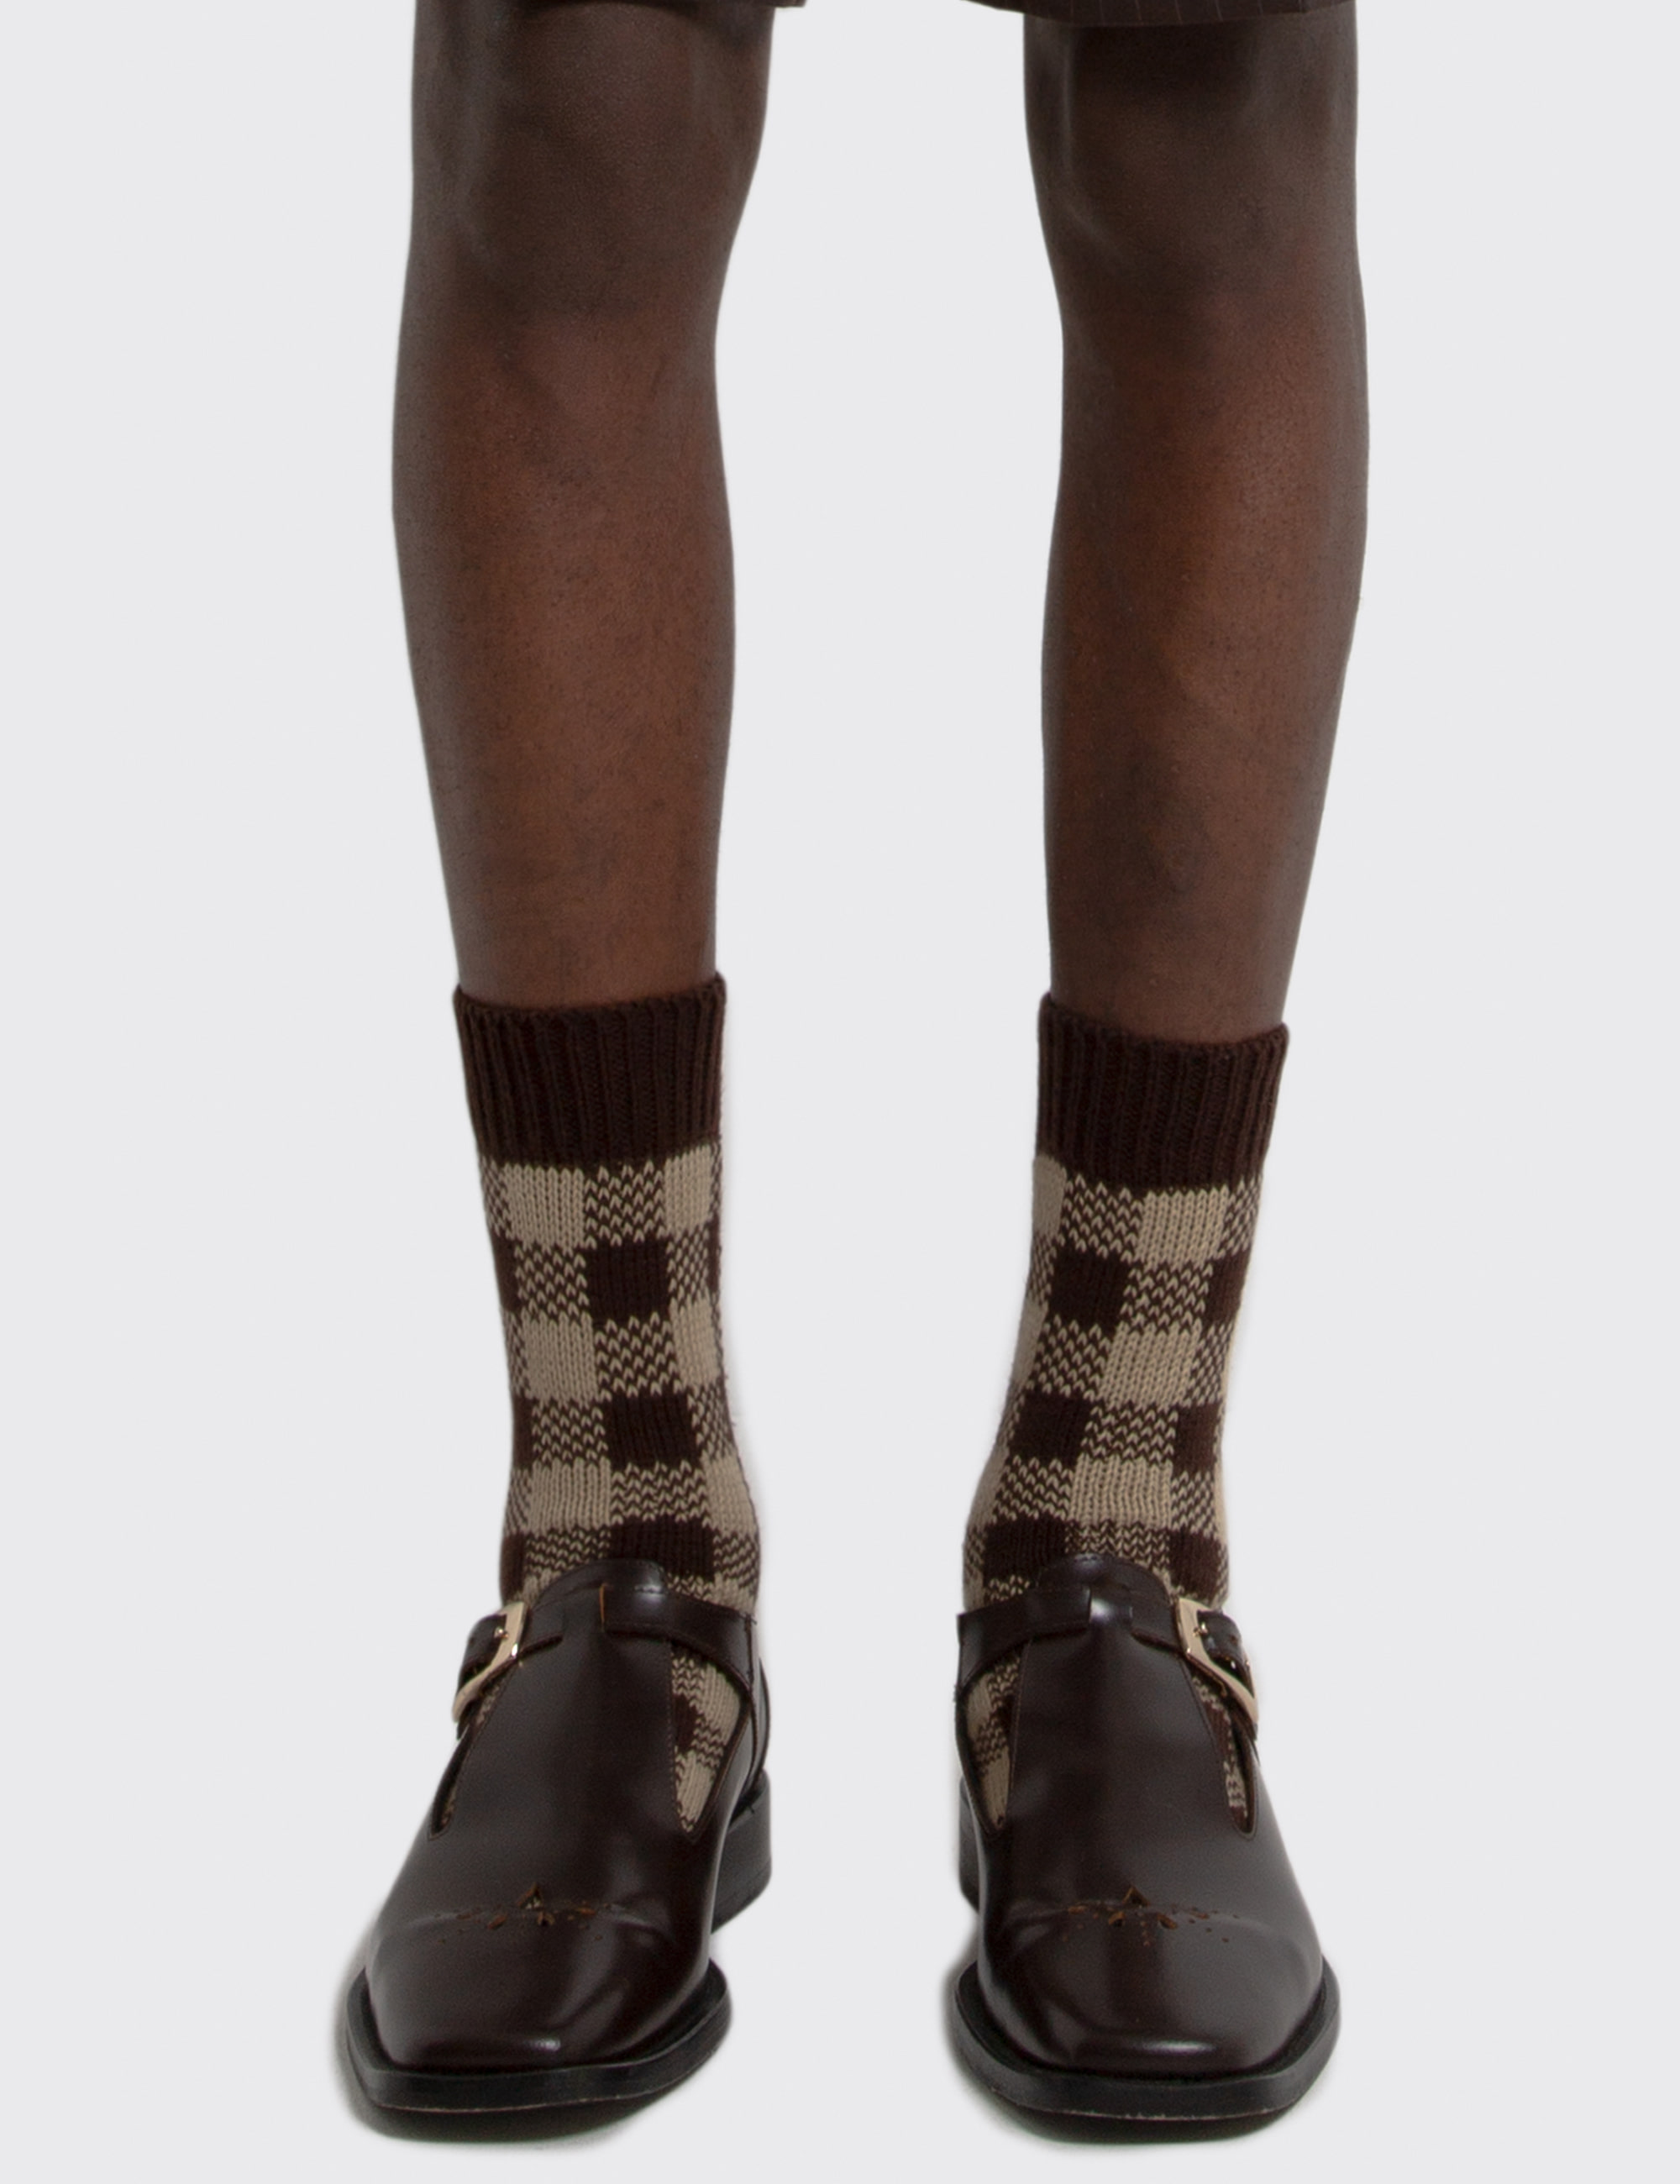 CHECK JACQUARD SOCKS_CAMEL&BROWN CHECK